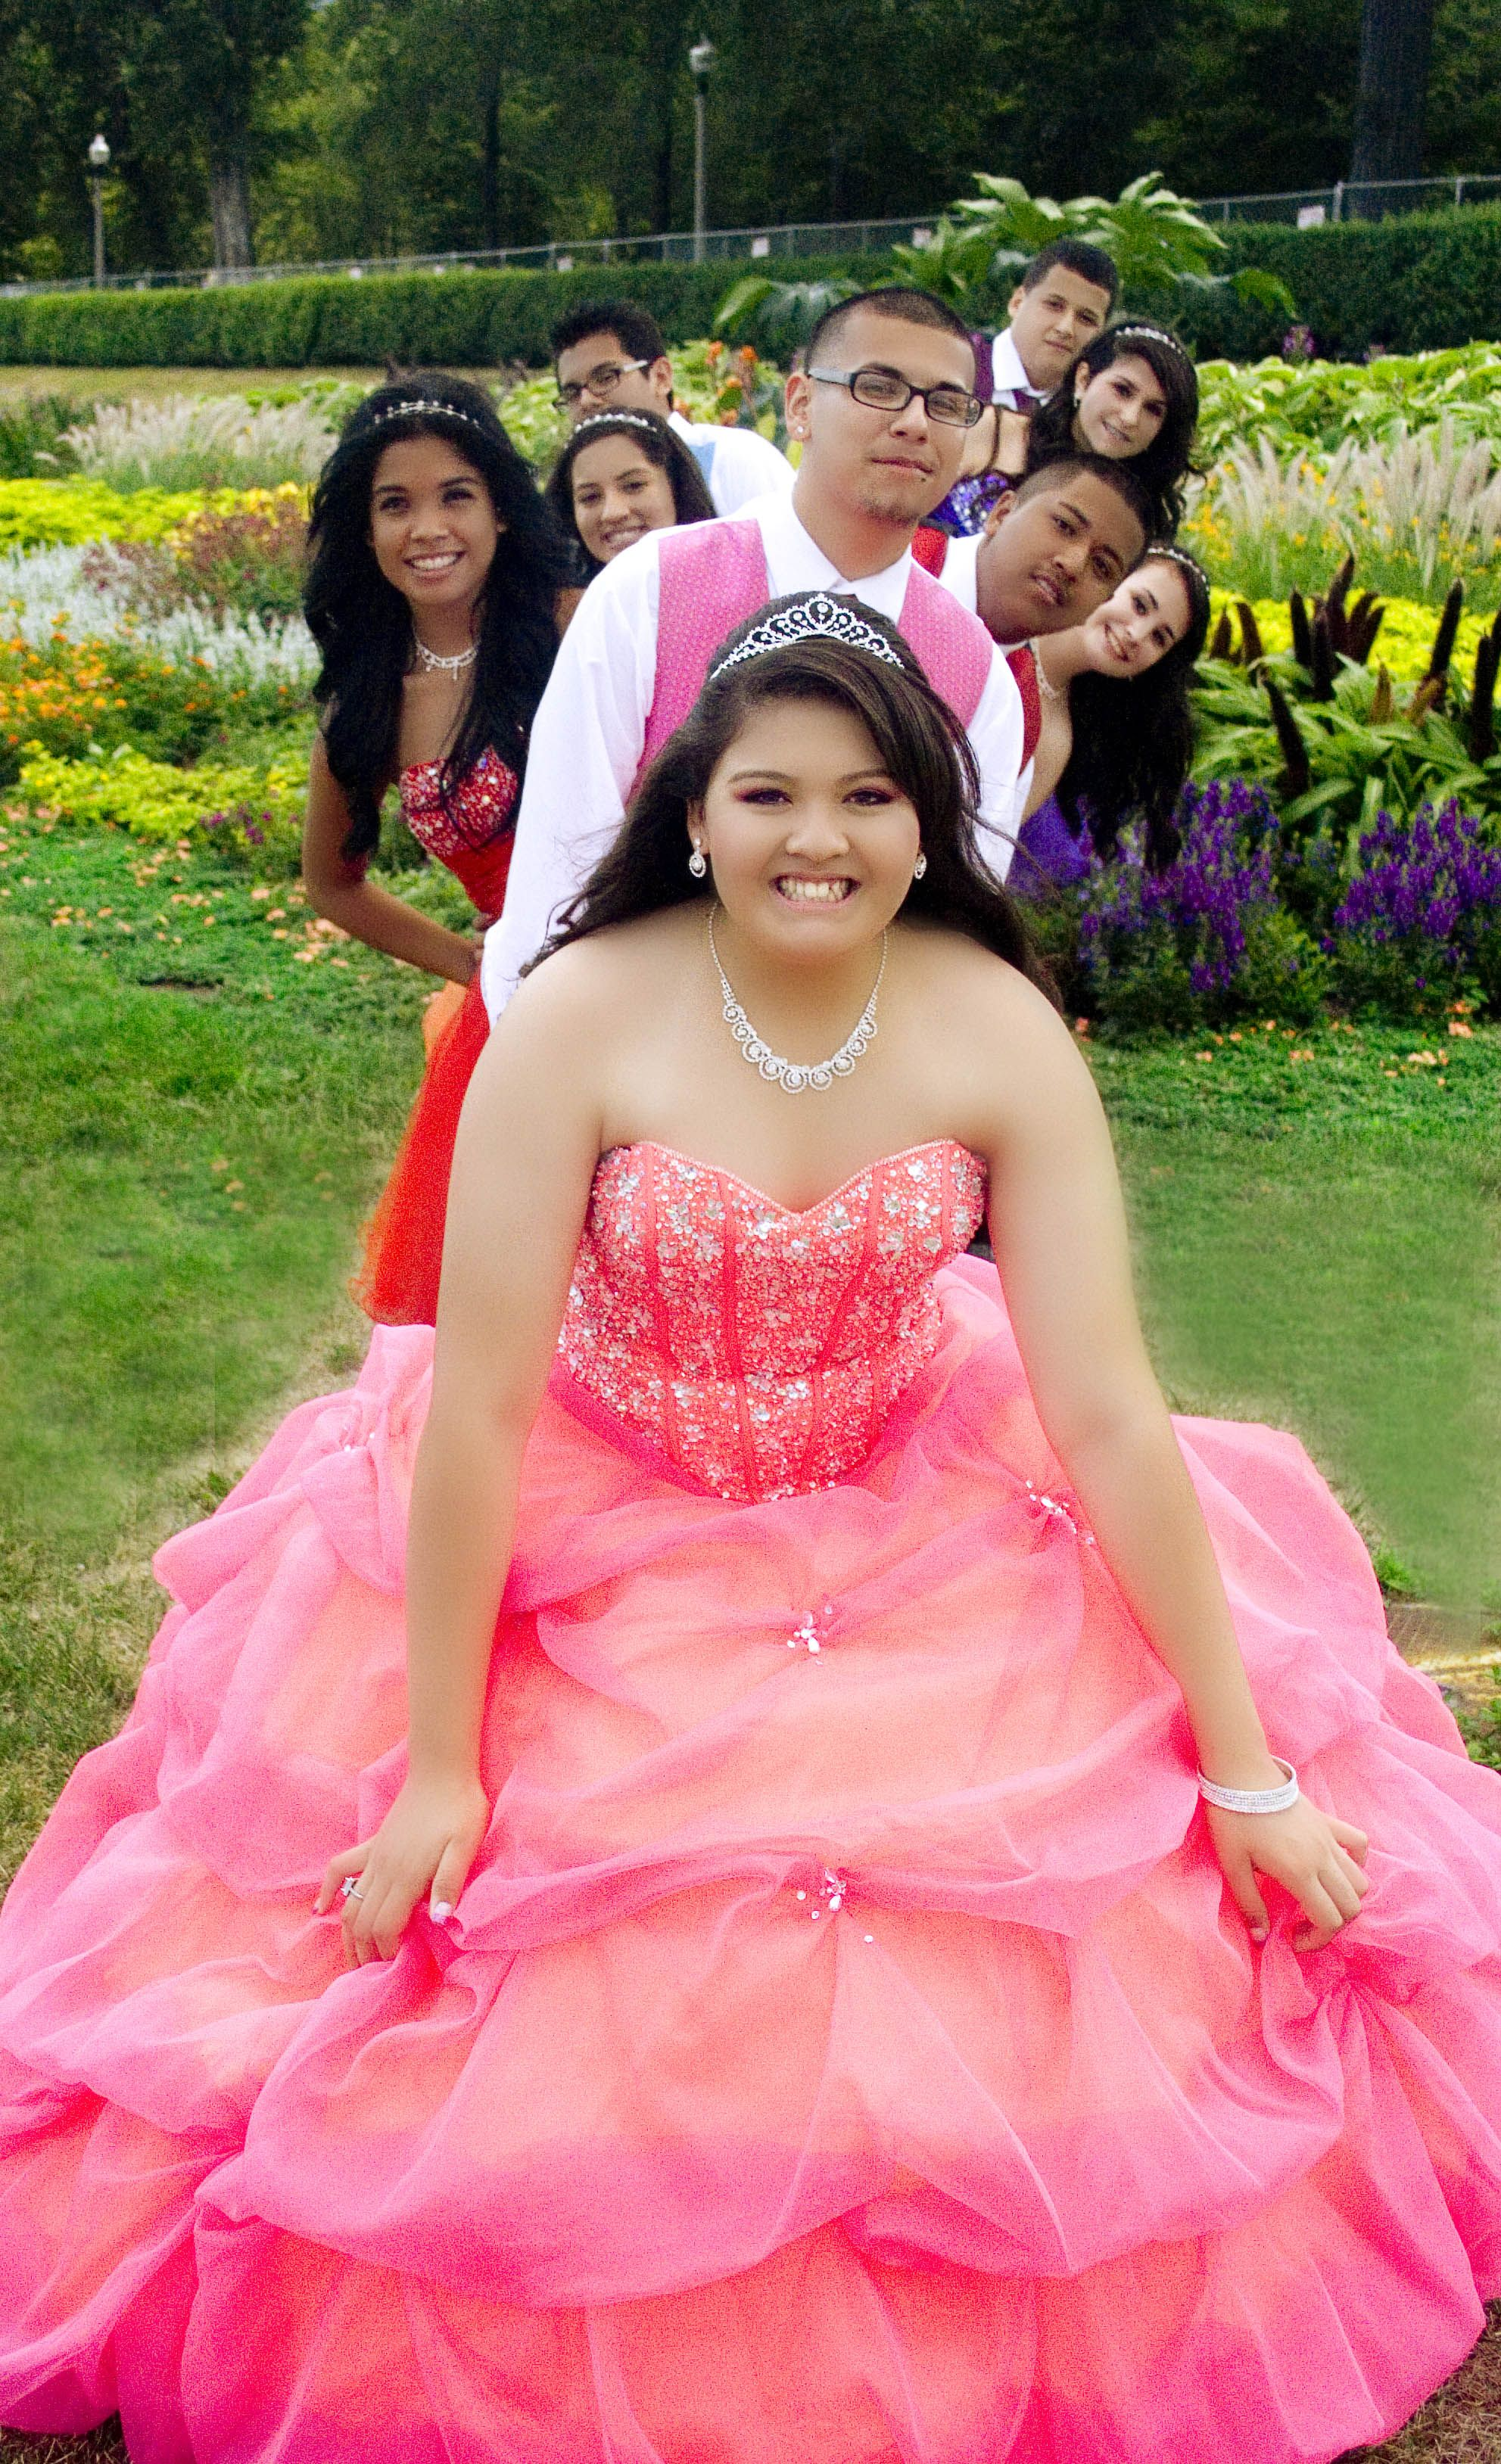 Cute 15 Y O Girl: Cute Pose! A Must Do For Her Quinceanera